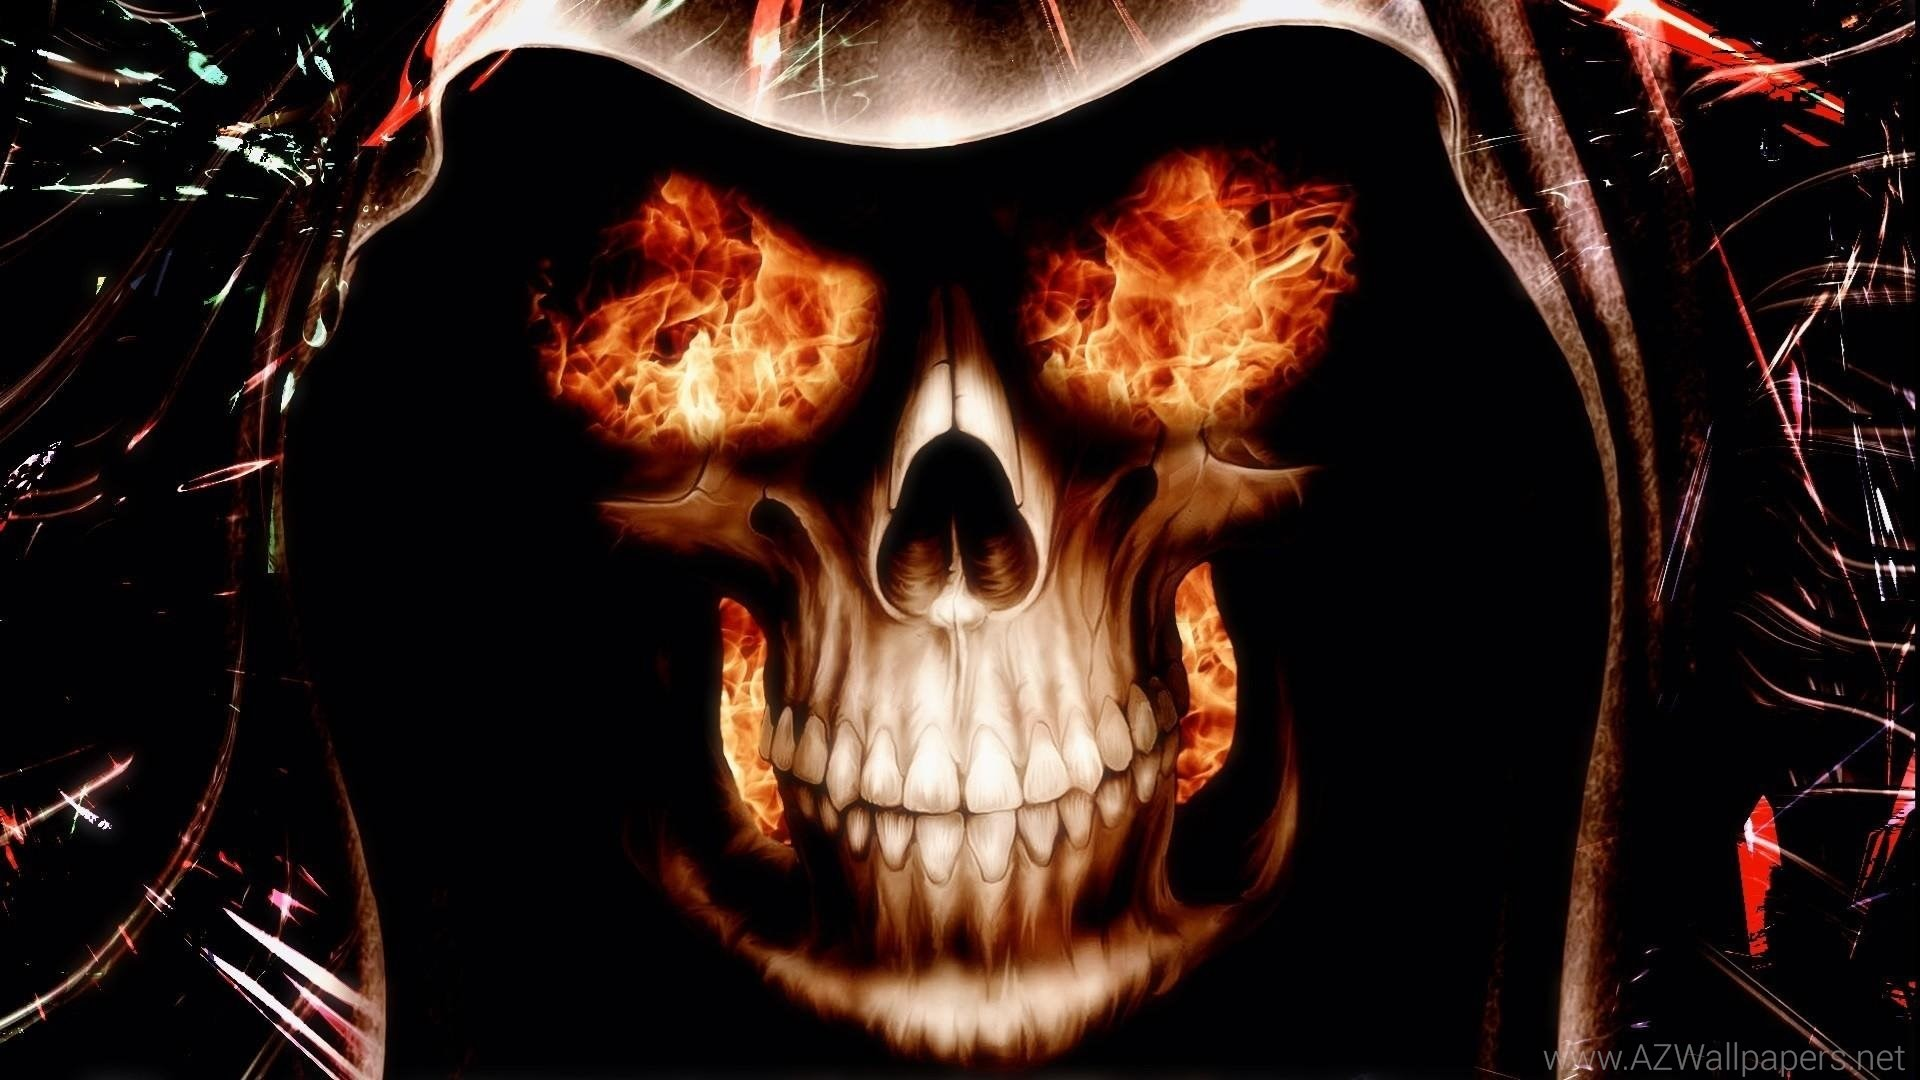 Red Flaming Skull Wallpaper (62+ Images